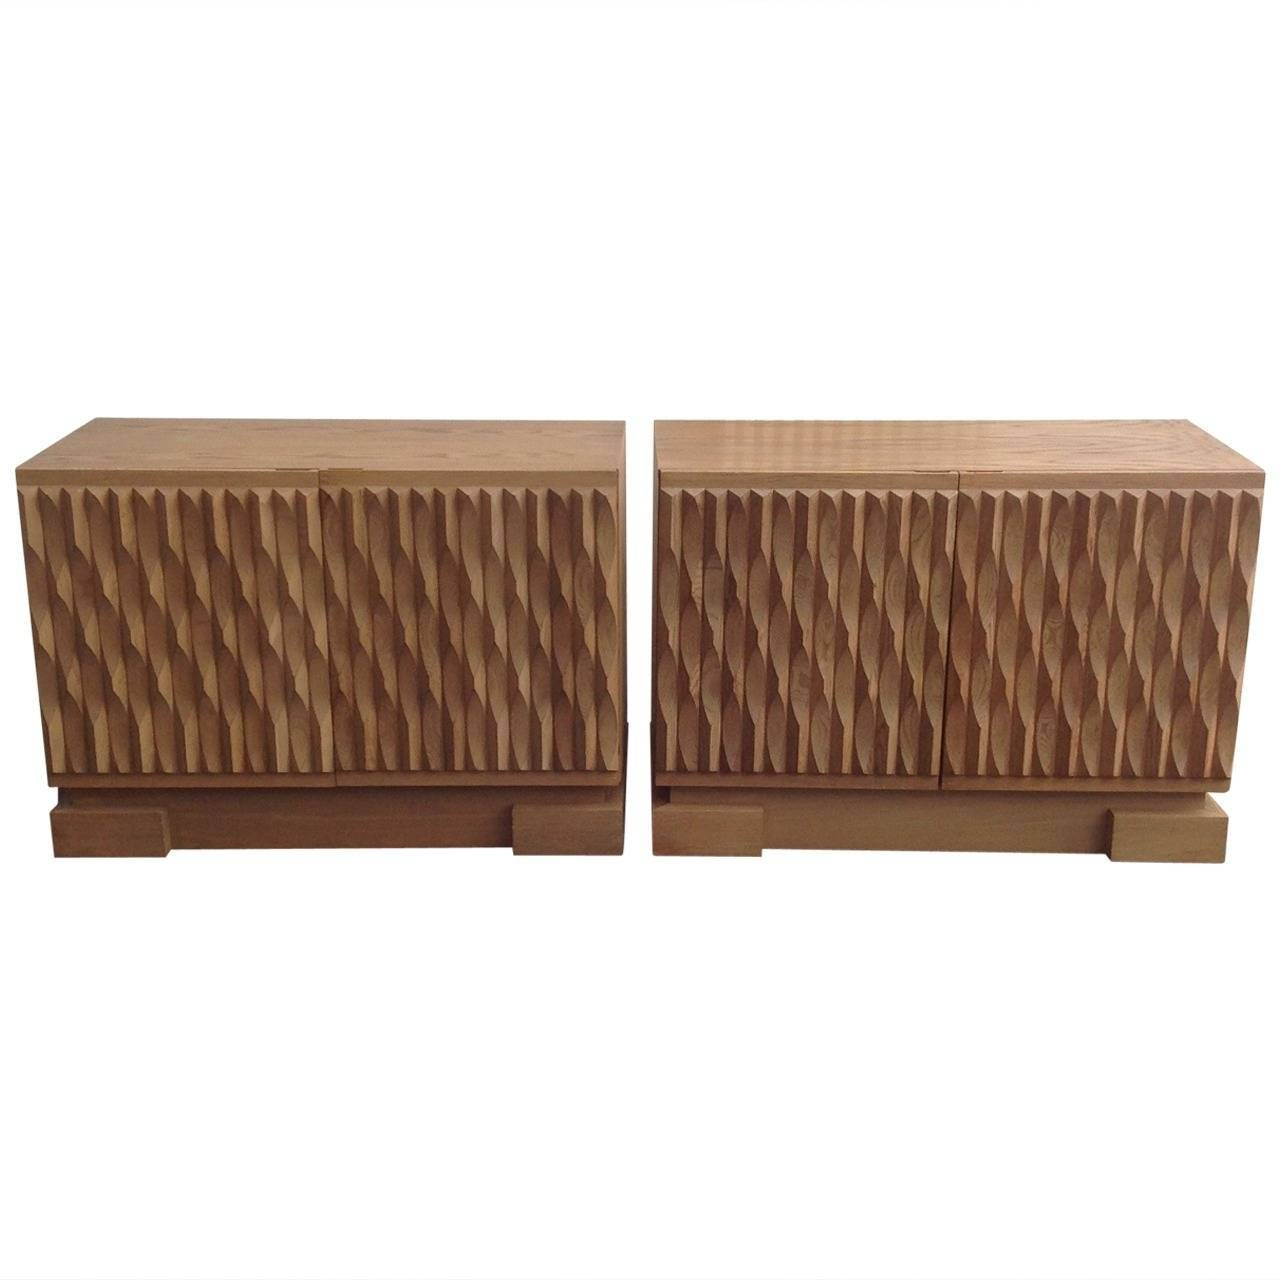 Price For 2 Belgium Brutalist Credenza Small Sideboards In Solid With Regard To Small Sideboards (#11 of 20)